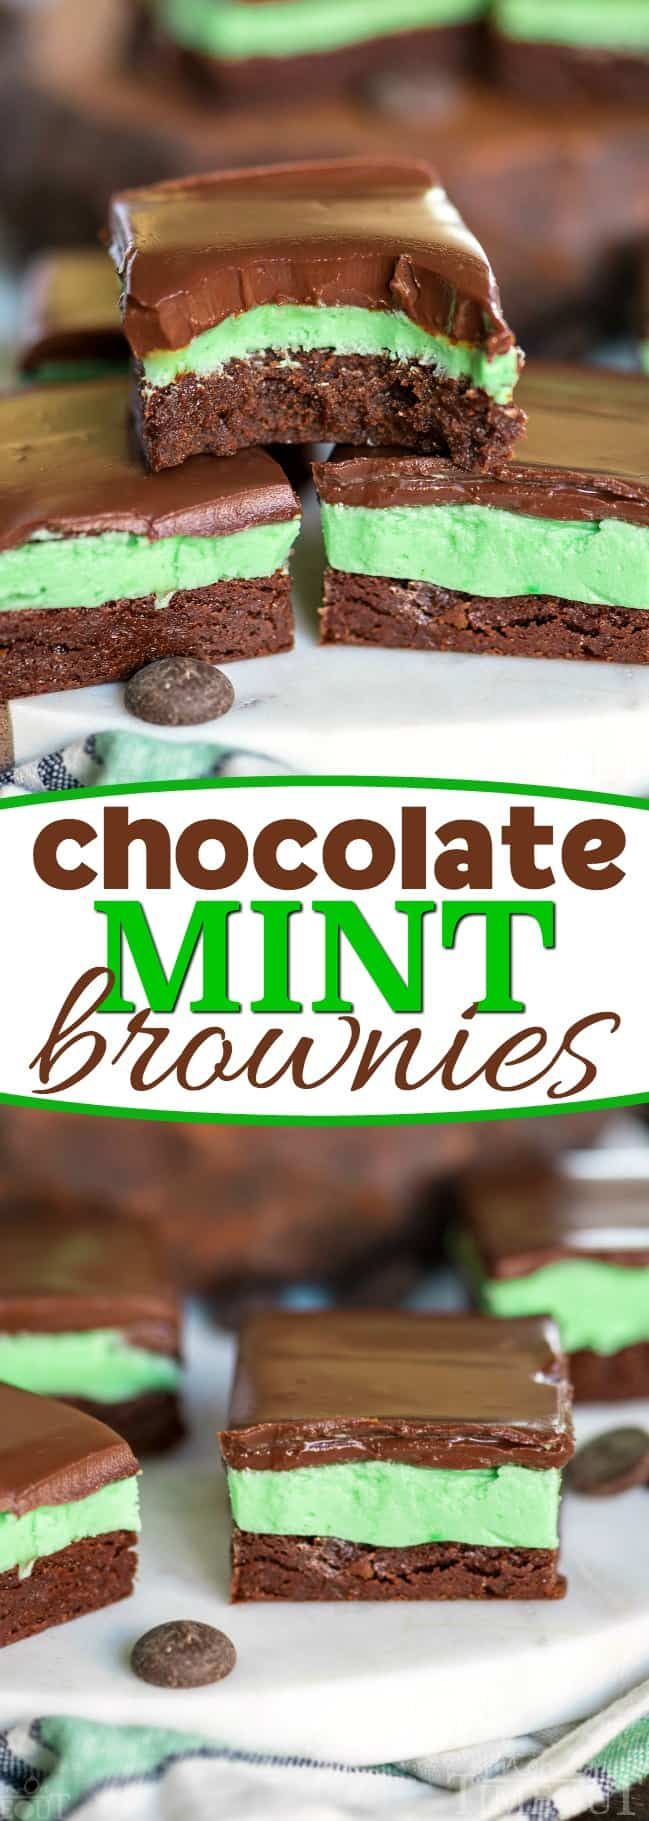 These incredibleChocolate Mint Brownies feature a decadent ganache topping, creamy mint filling, and a moist, rich brownie base.